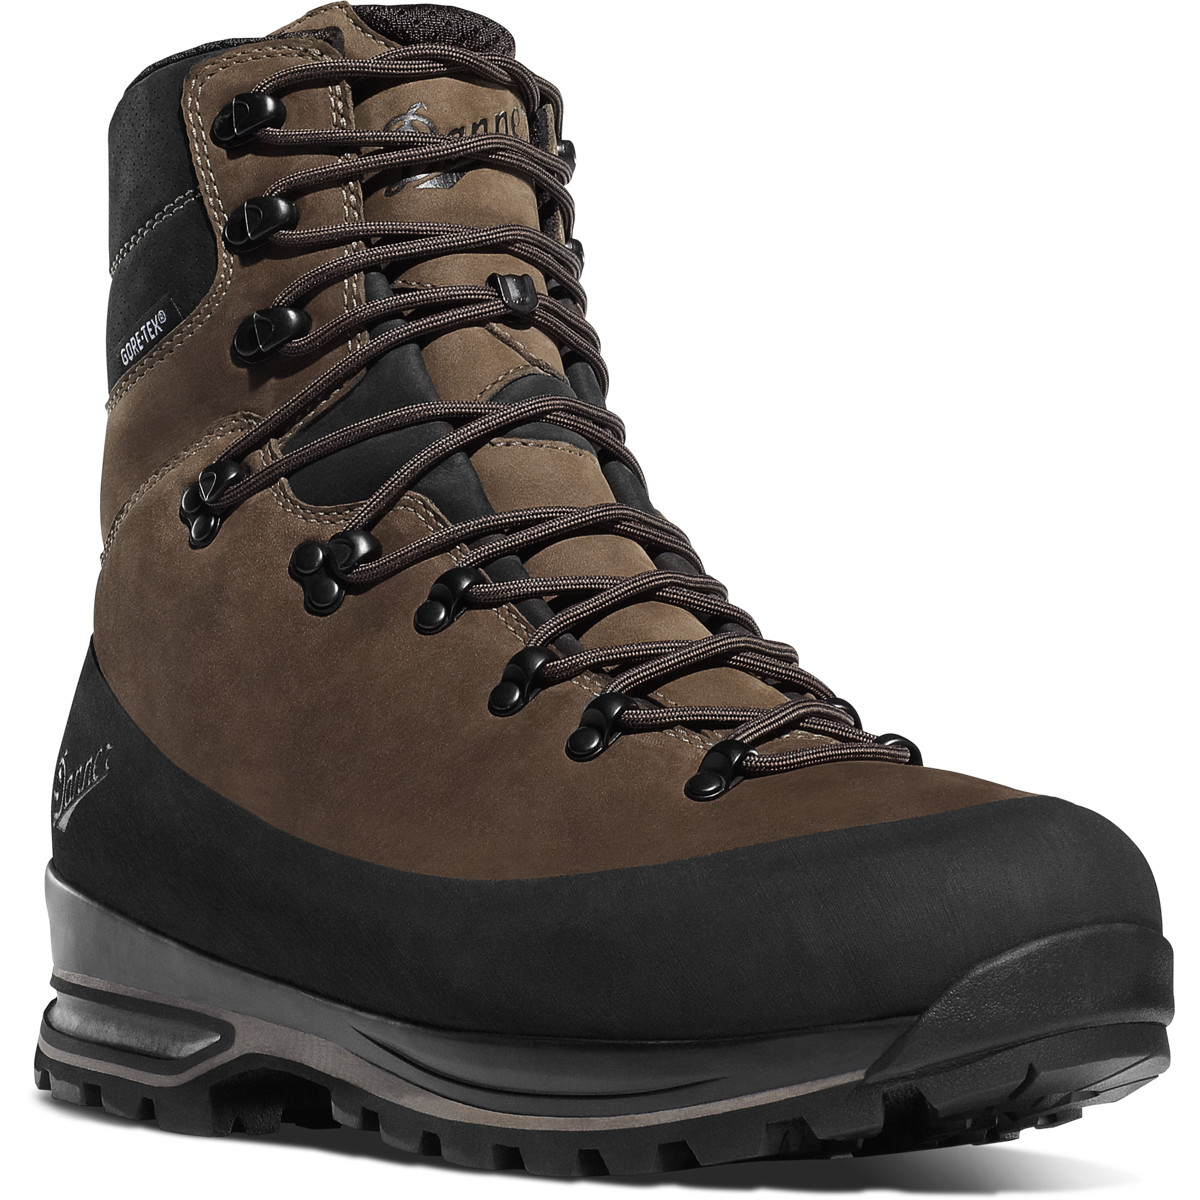 "Danner 15601 Men's 8"" Canteen Waterproof GORE-TEX ..."